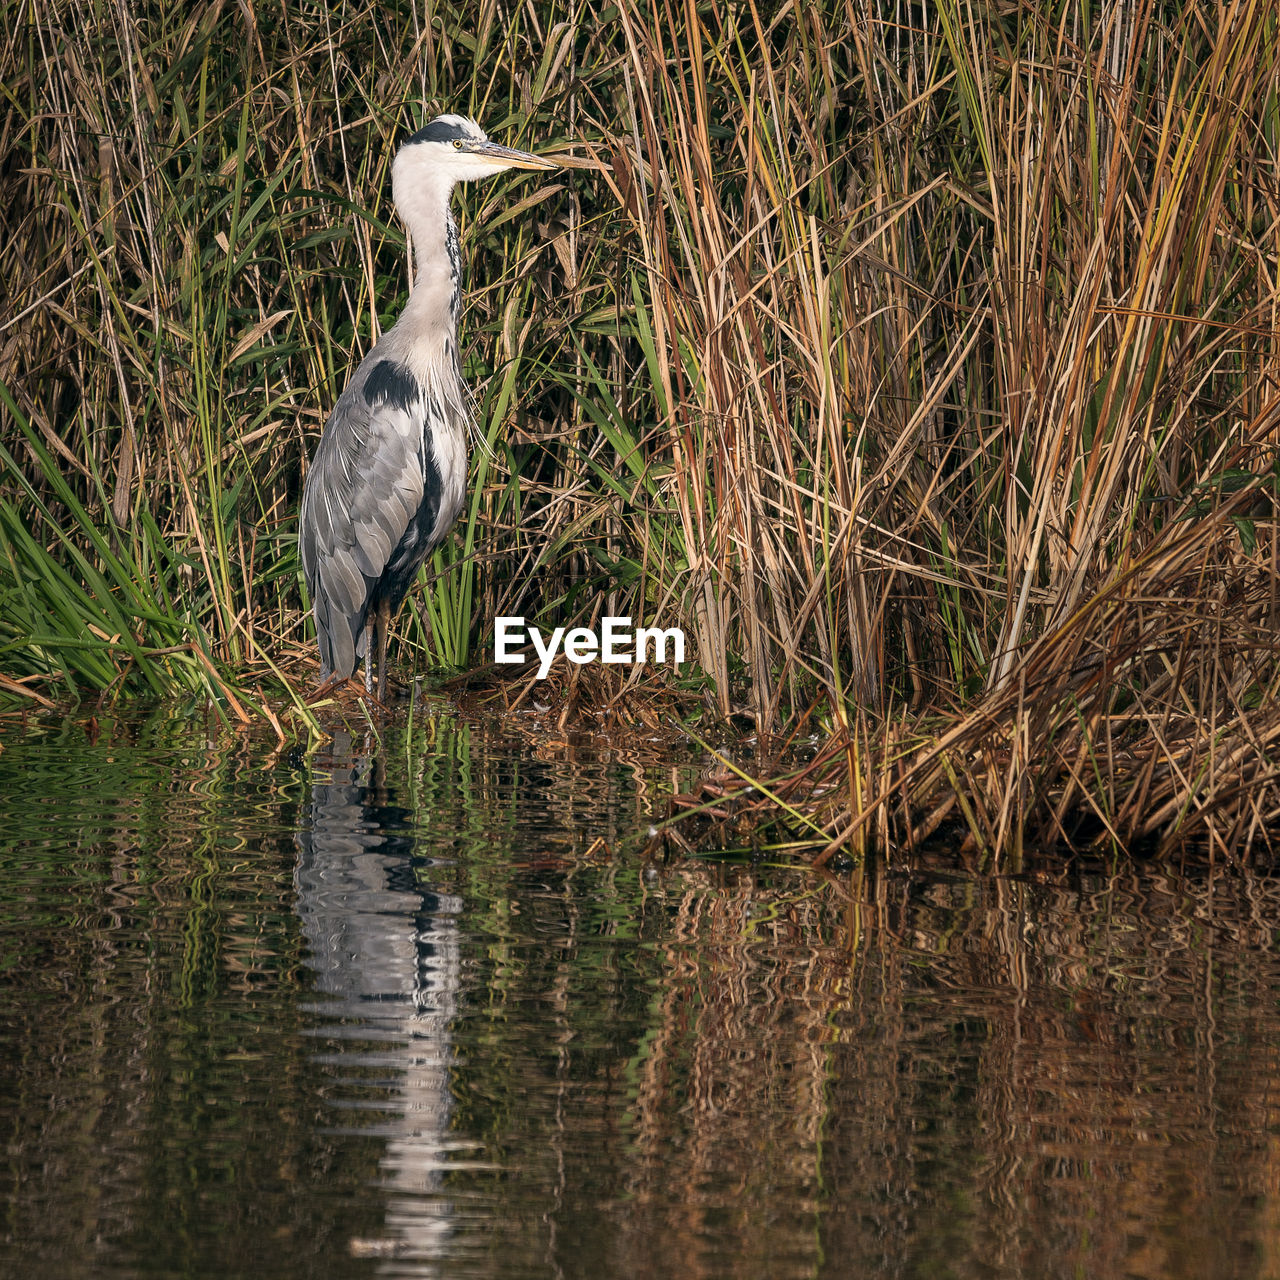 animal themes, animal wildlife, bird, animal, animals in the wild, one animal, vertebrate, water, heron, reflection, water bird, gray heron, lake, plant, nature, no people, perching, day, great blue heron, outdoors